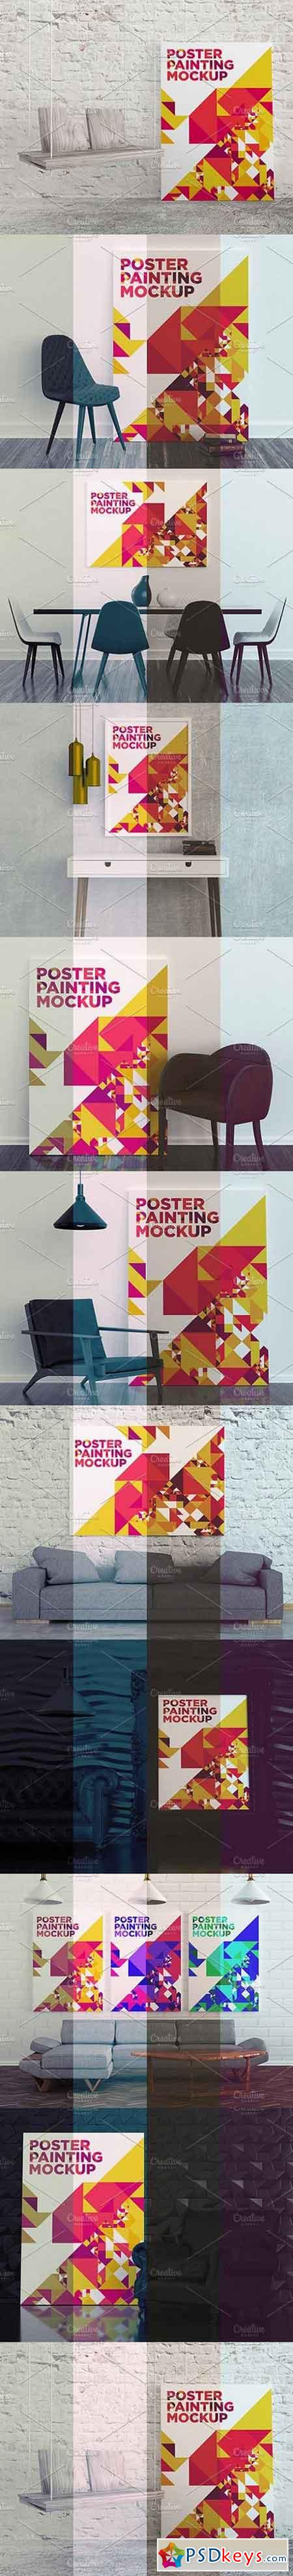 Poster Painting MockUp Pack 001 1710761